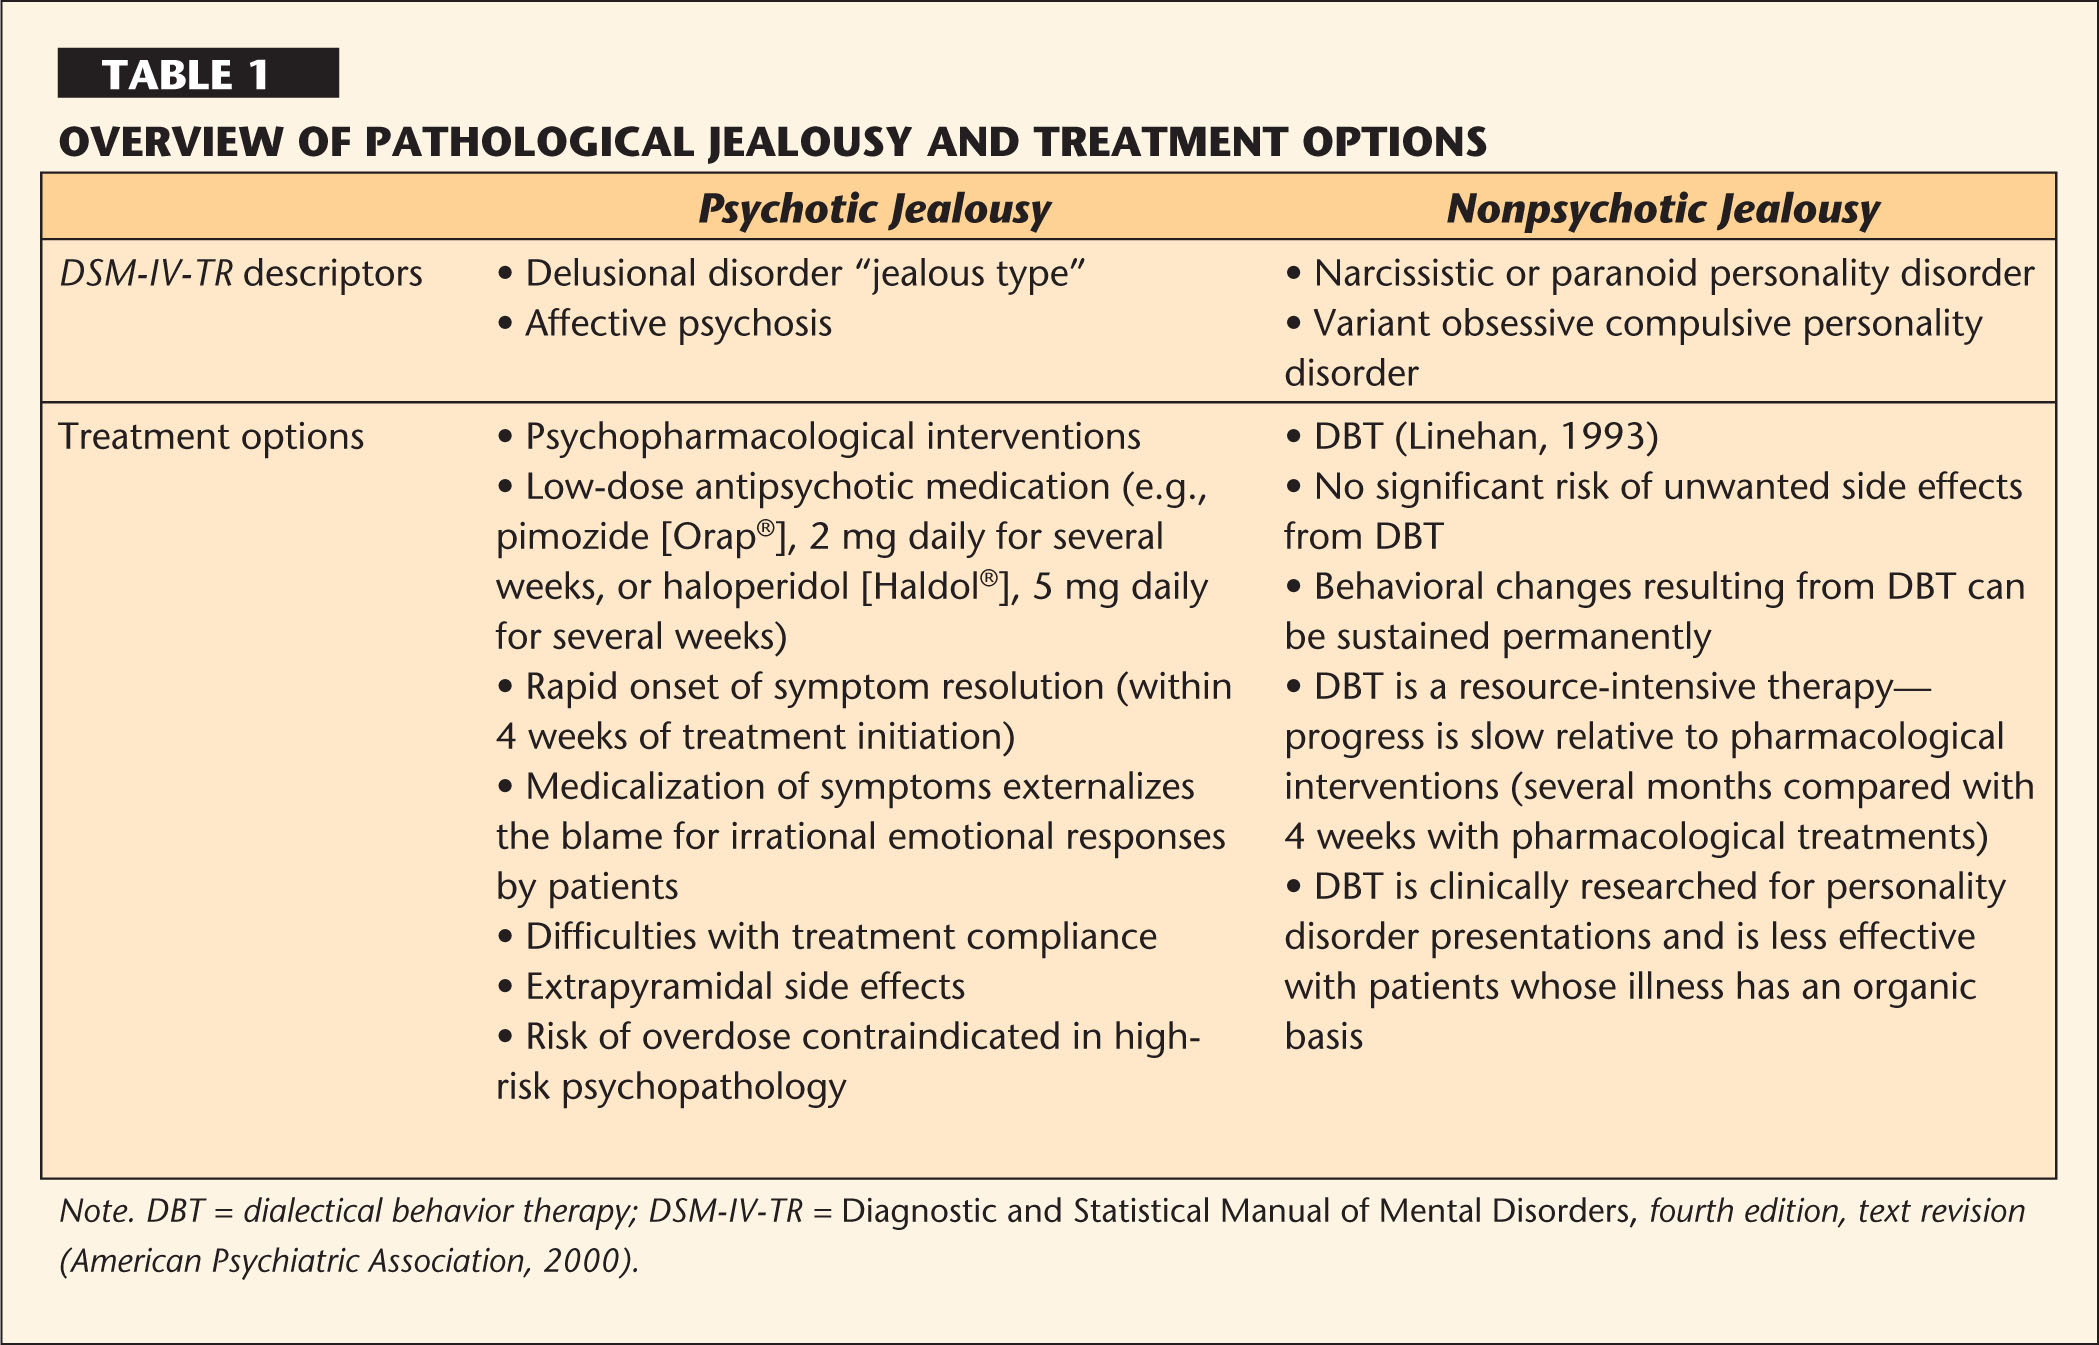 Overview of Pathological Jealousy and Treatment Options